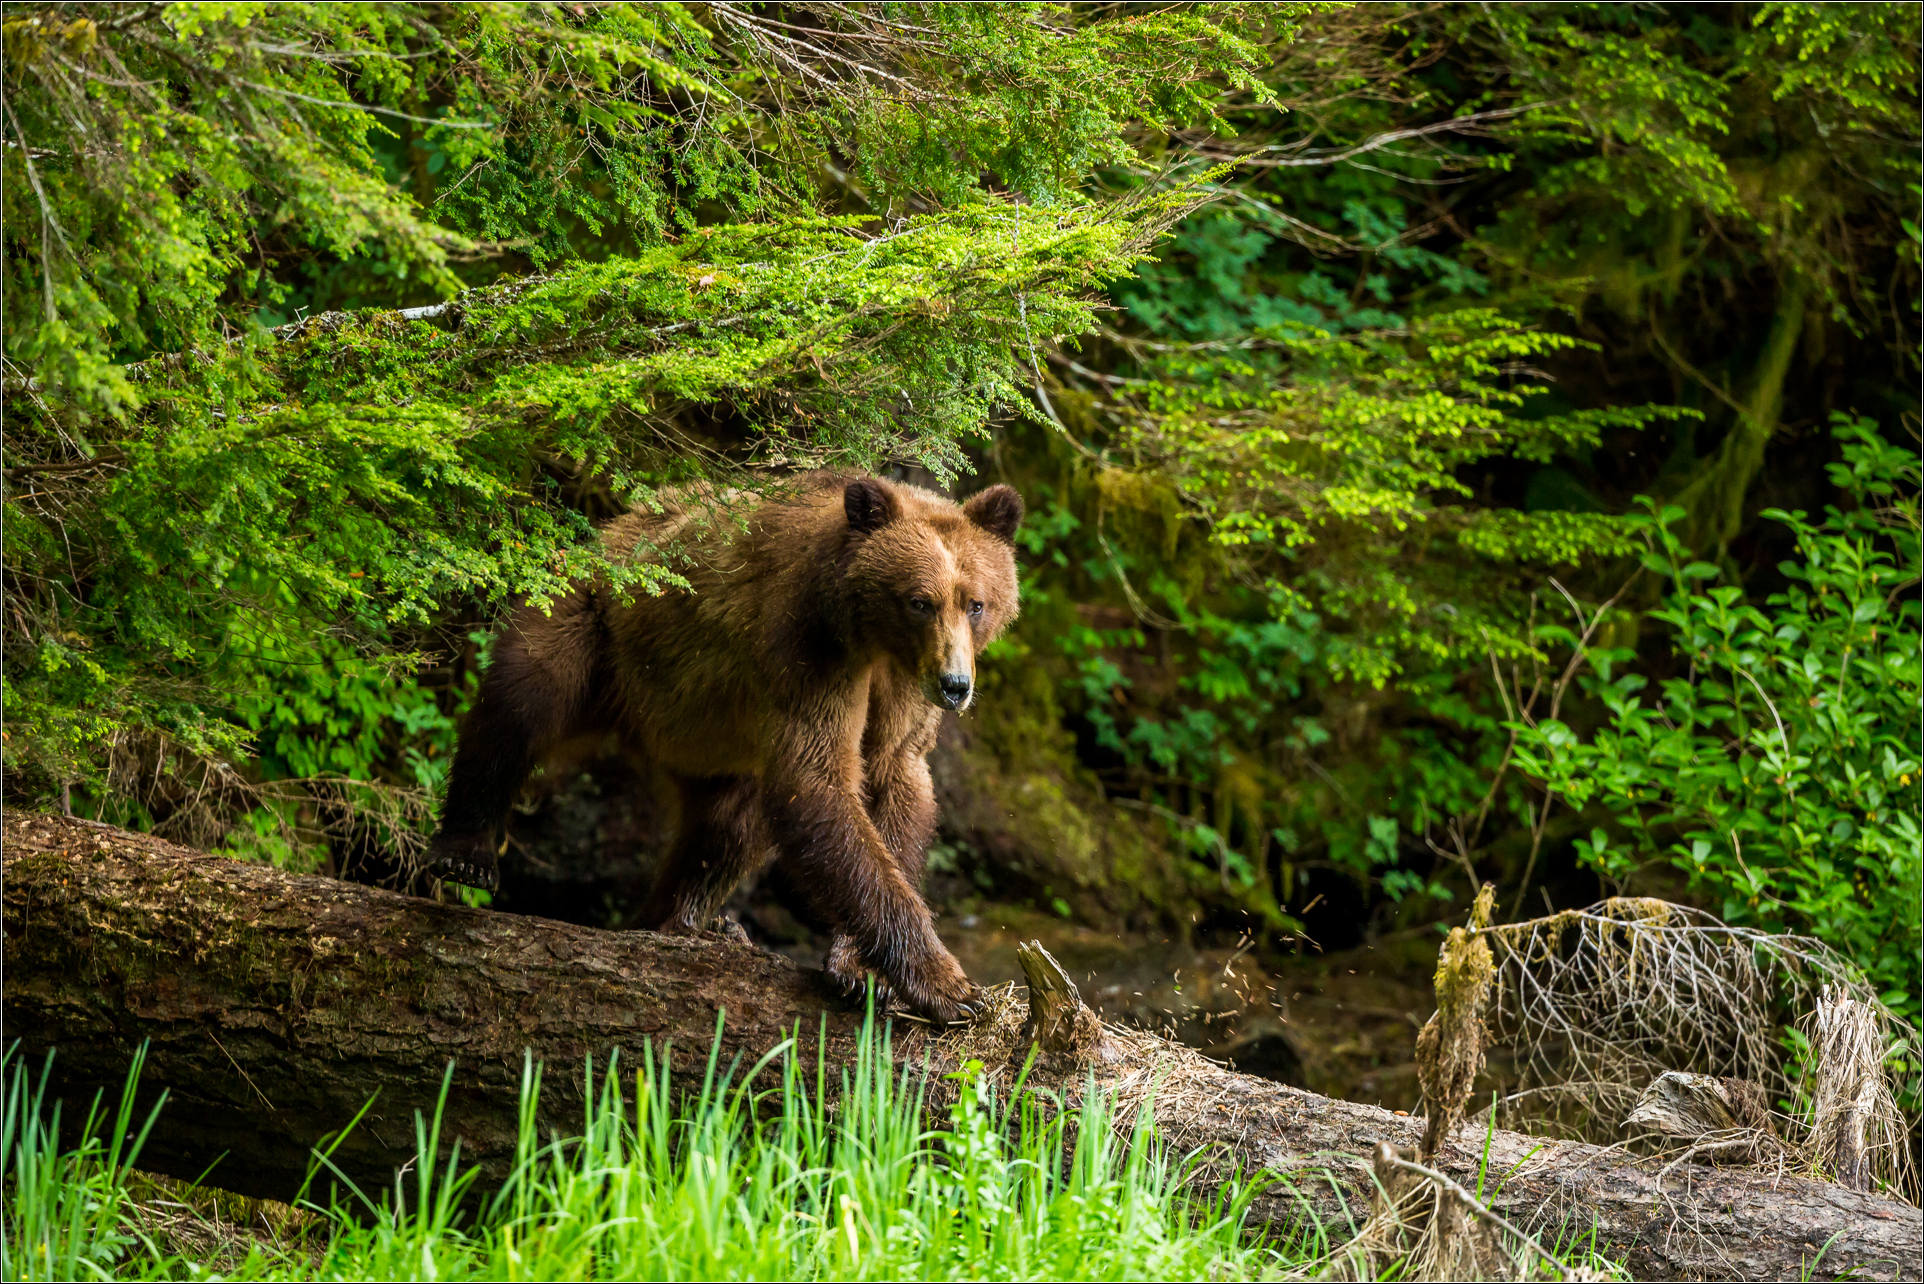 K Rsquo Tzim A Deen Grizzly Bear Sanctuary Christopher Martin